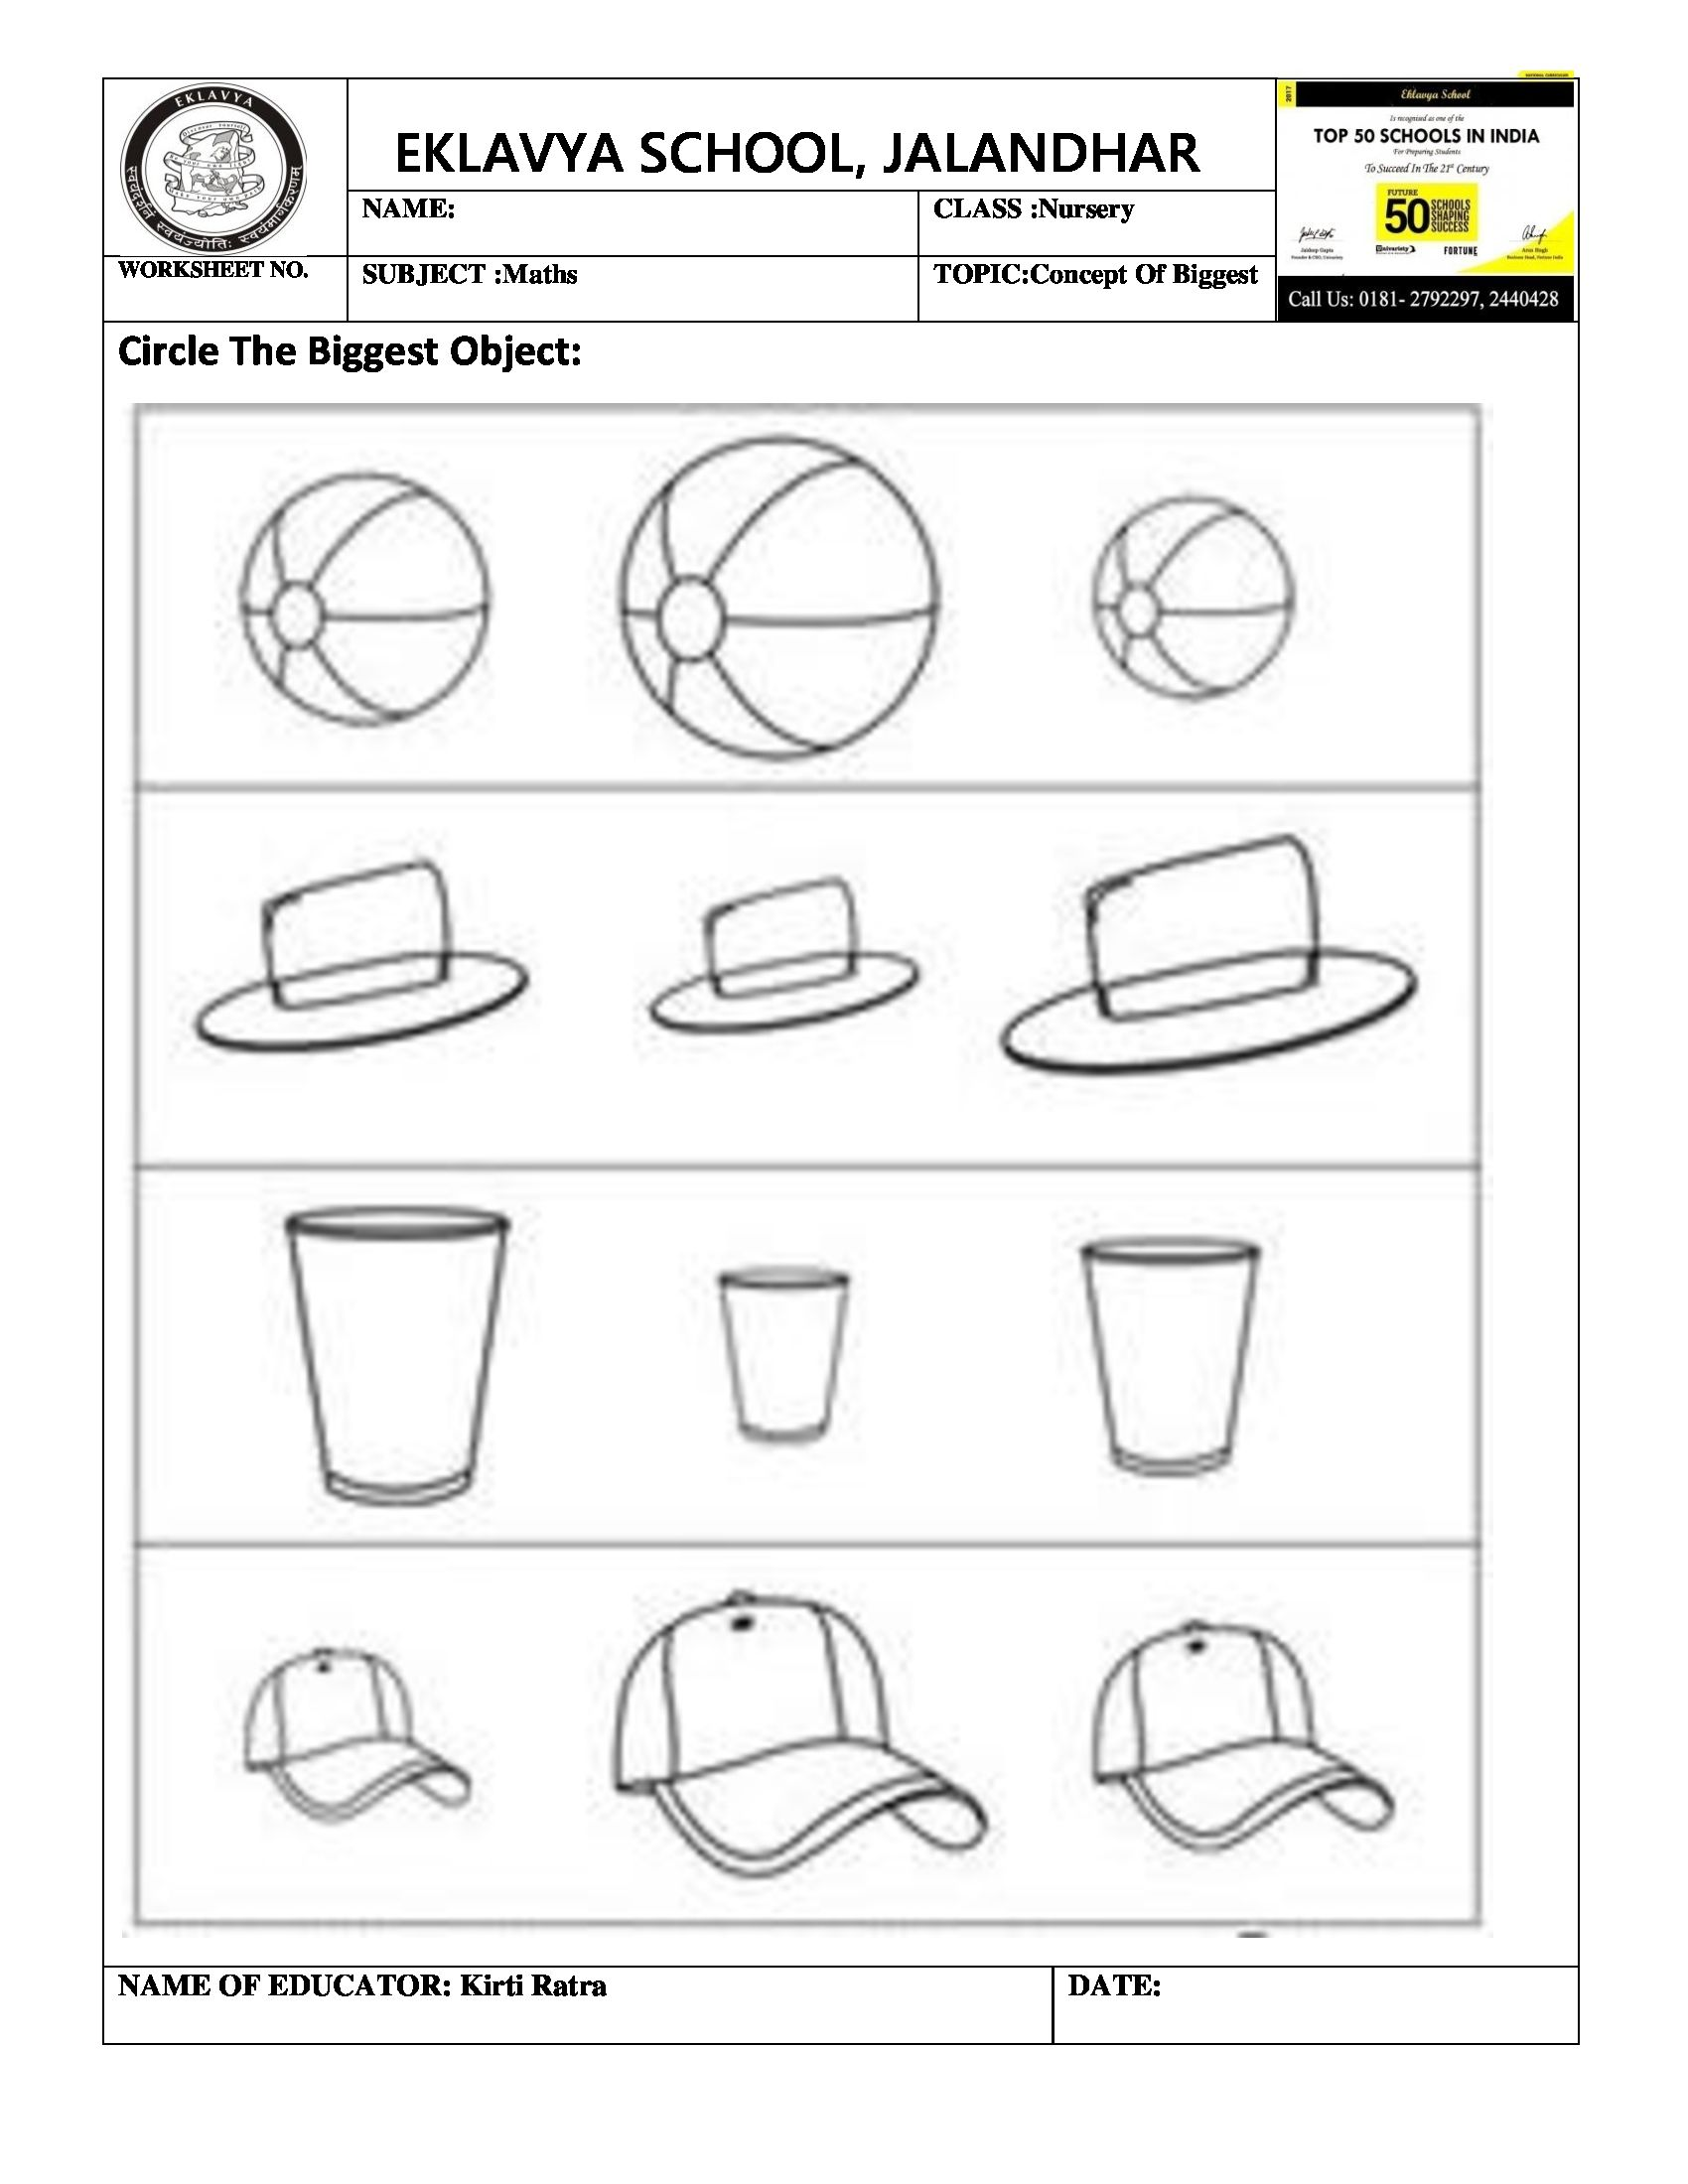 Worksheet Circle The Biggest Objects | Pre- Primary ...